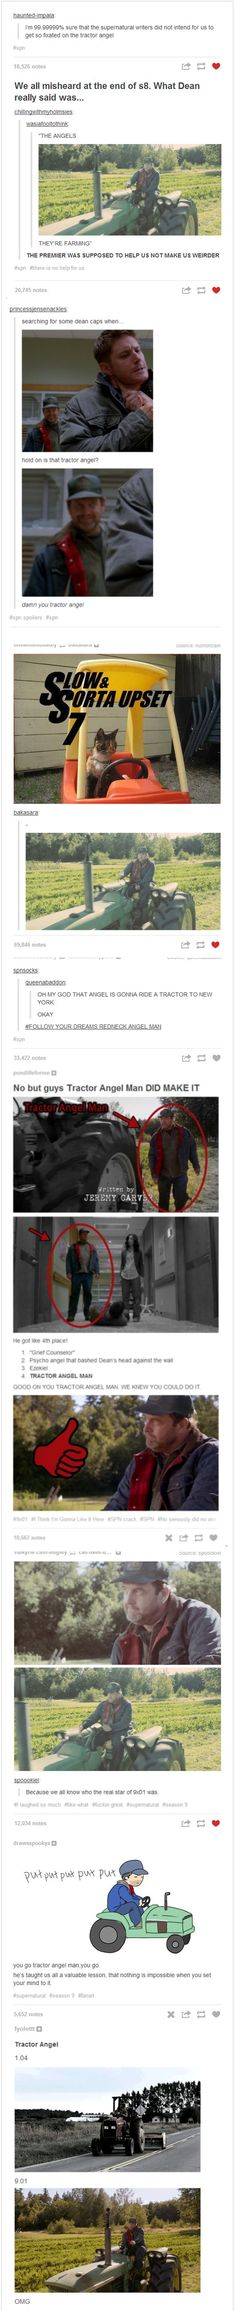 Crazy Redneck Tractor Angel - I don't care if you've never even seen the show, this is freaking hilarious #ad